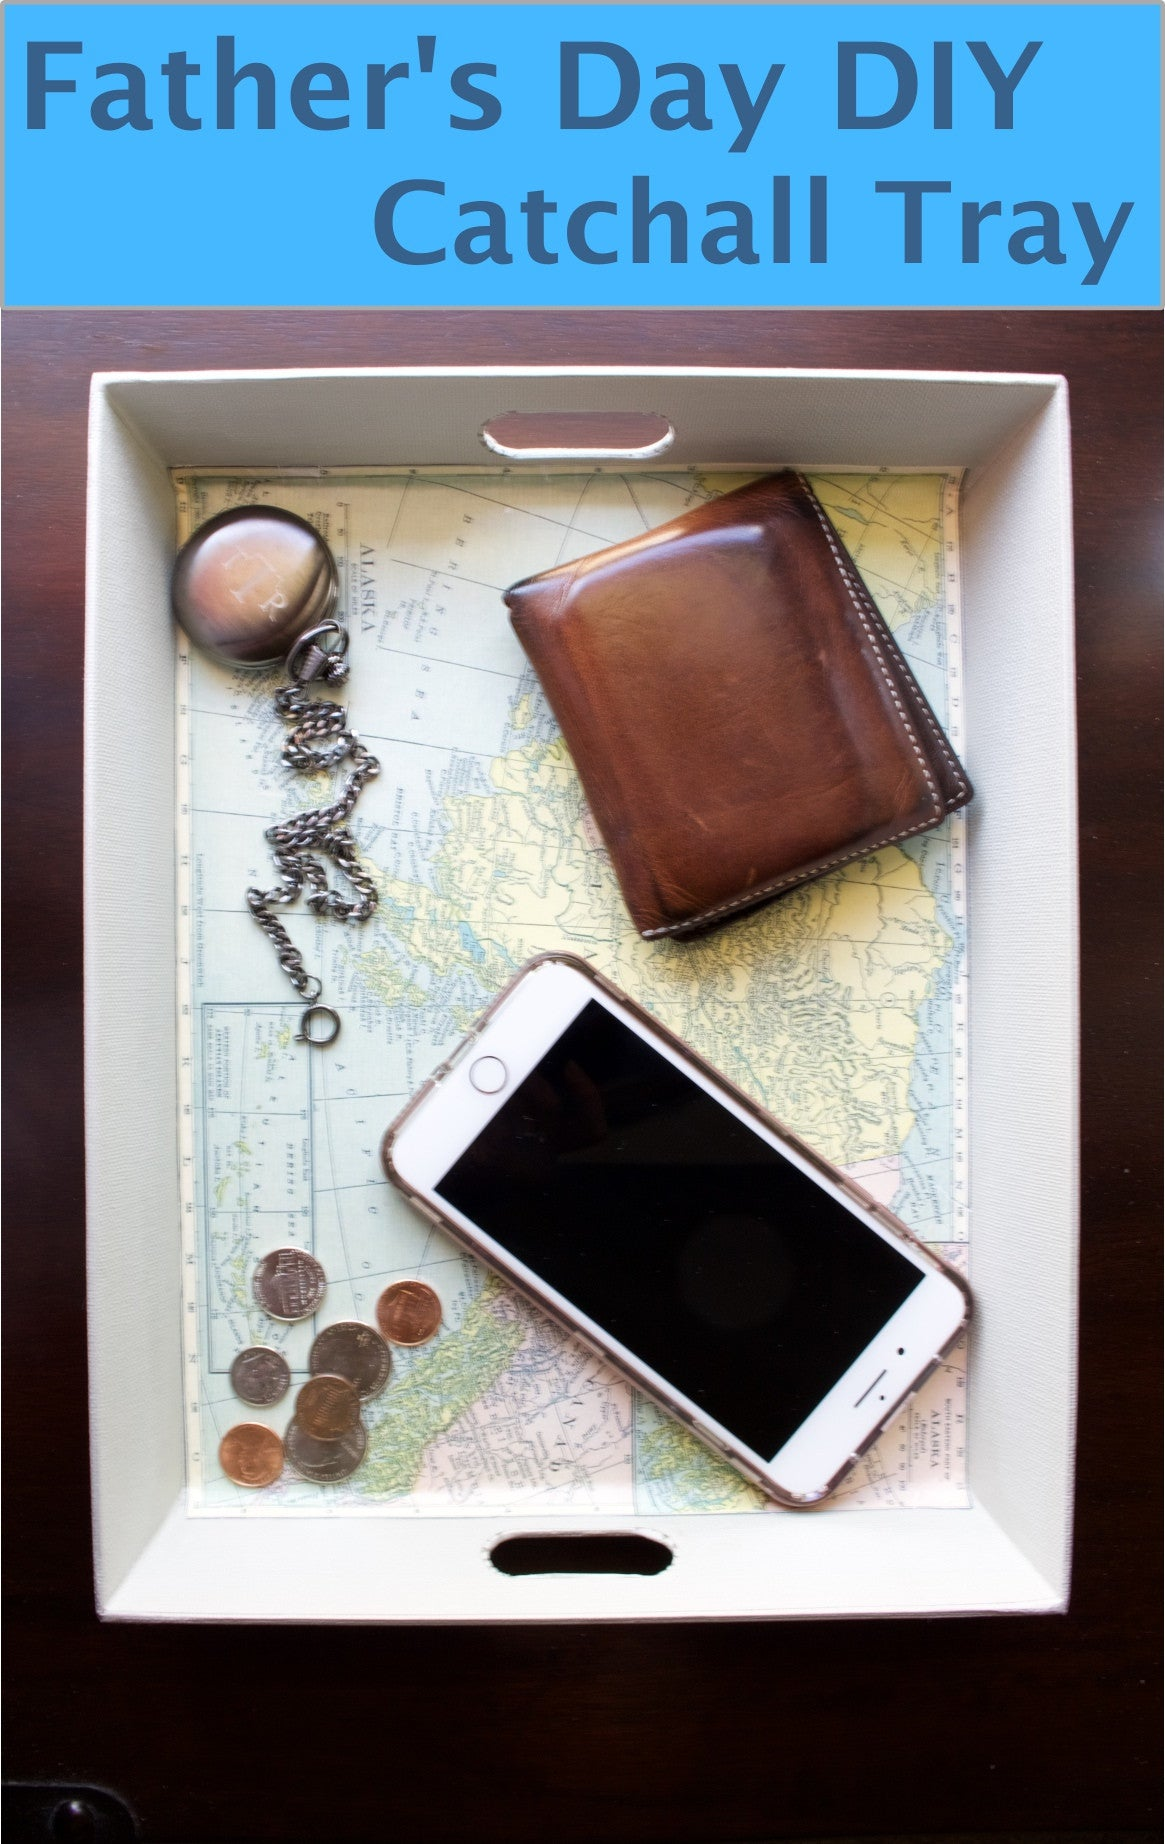 Father's Day DIY Catchall Tray